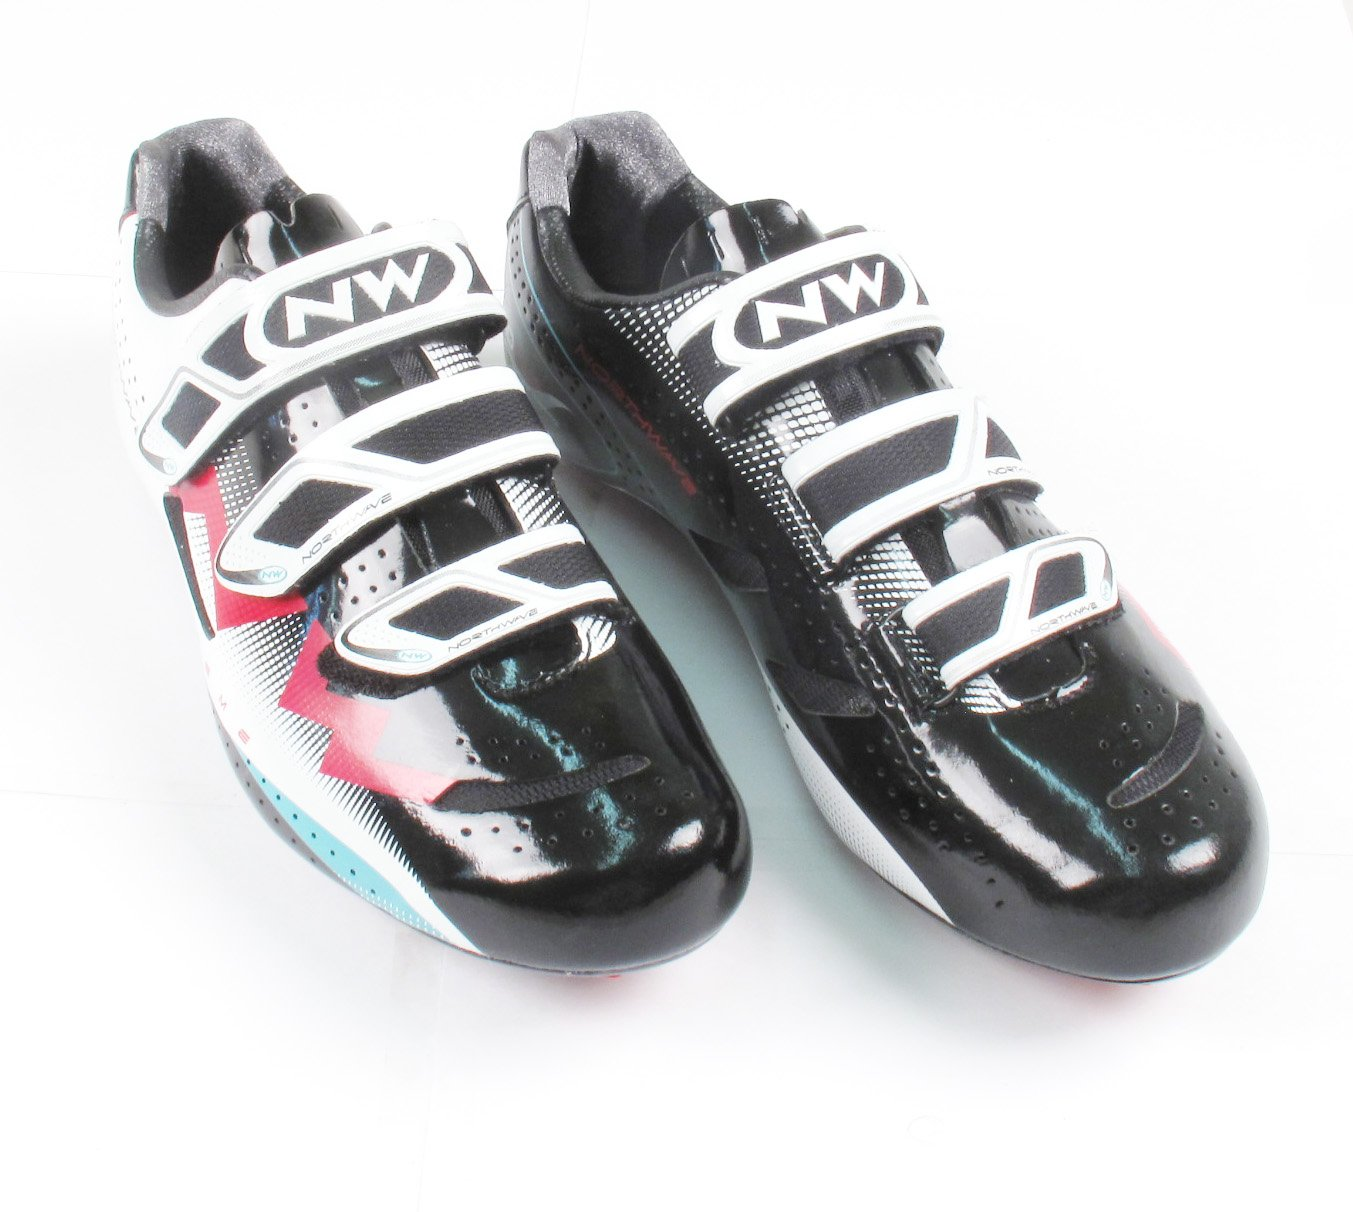 Northwave Extreme White/Black/Red Road Cycling Shoe Size 41 SPD SL Look Biking by Northwave